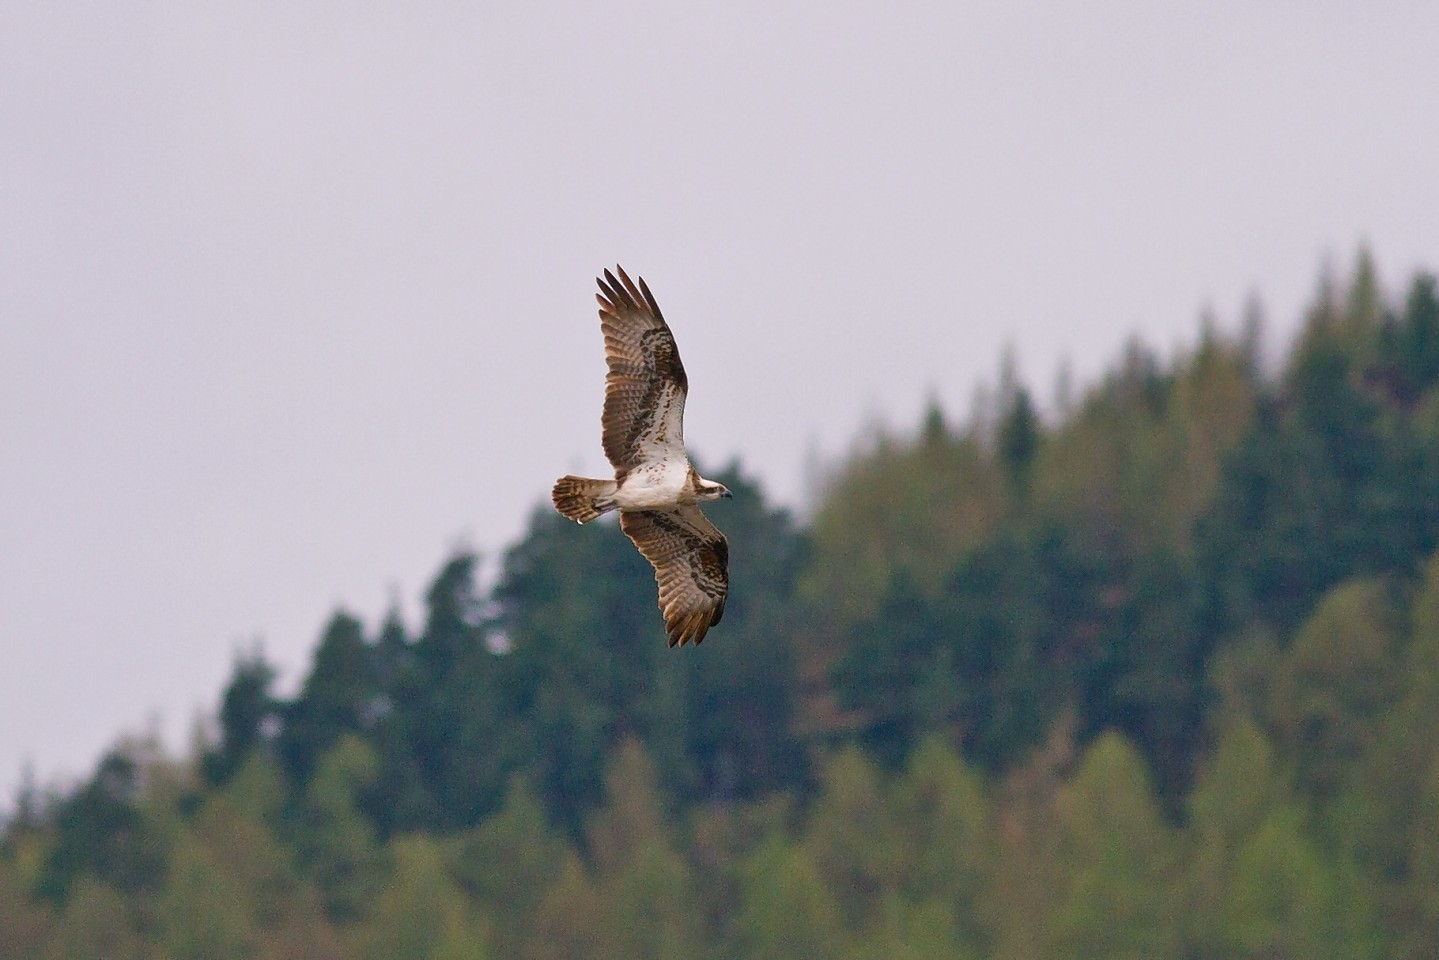 Lady the osprey on her homecoming last year